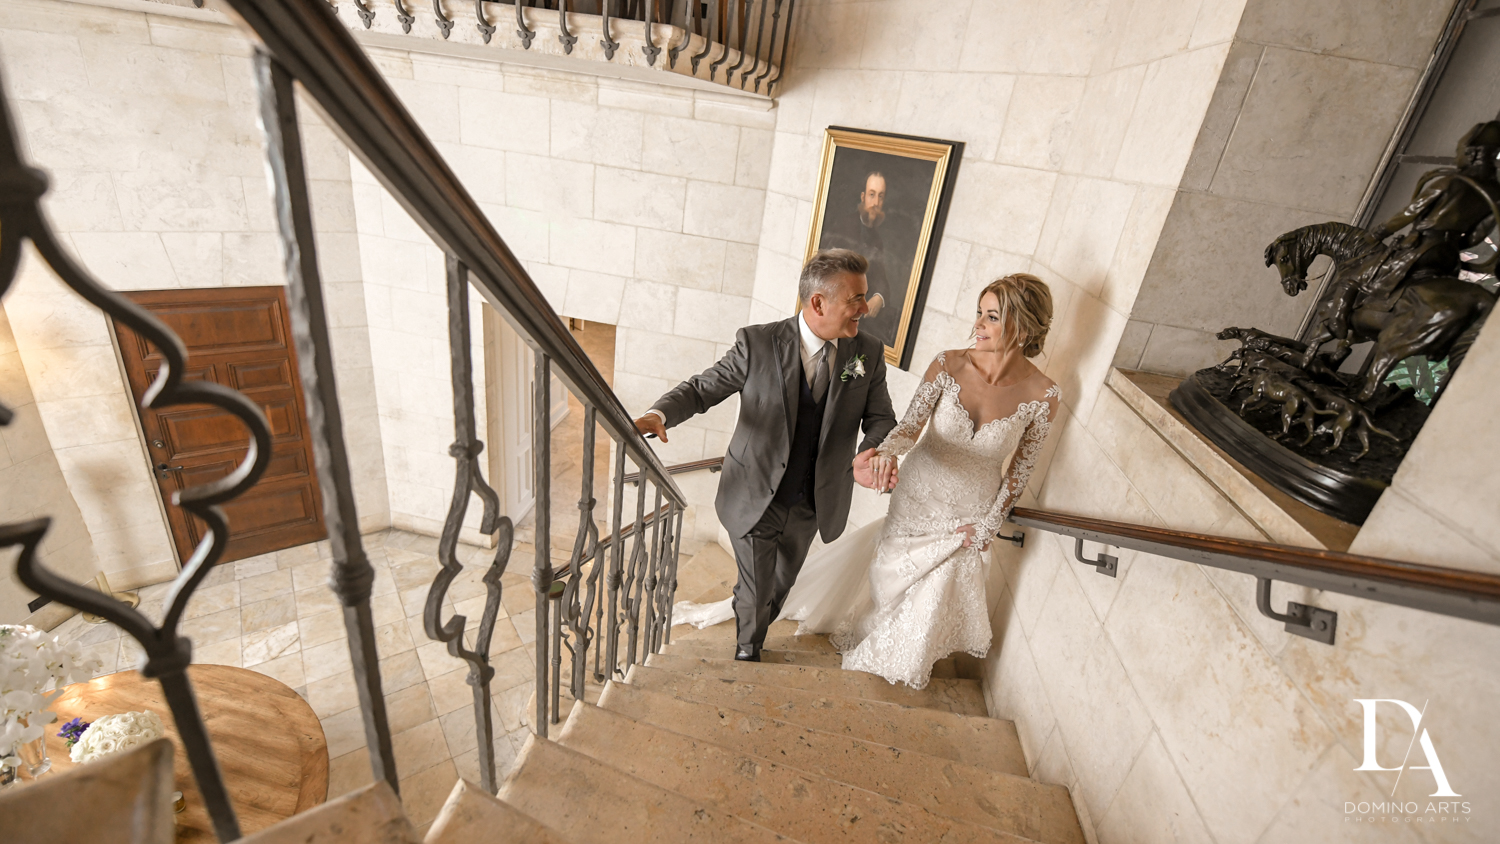 stairway portrait at Classic & Elegant Wedding Photography at Fisher Island Miami by Domino Arts Photography